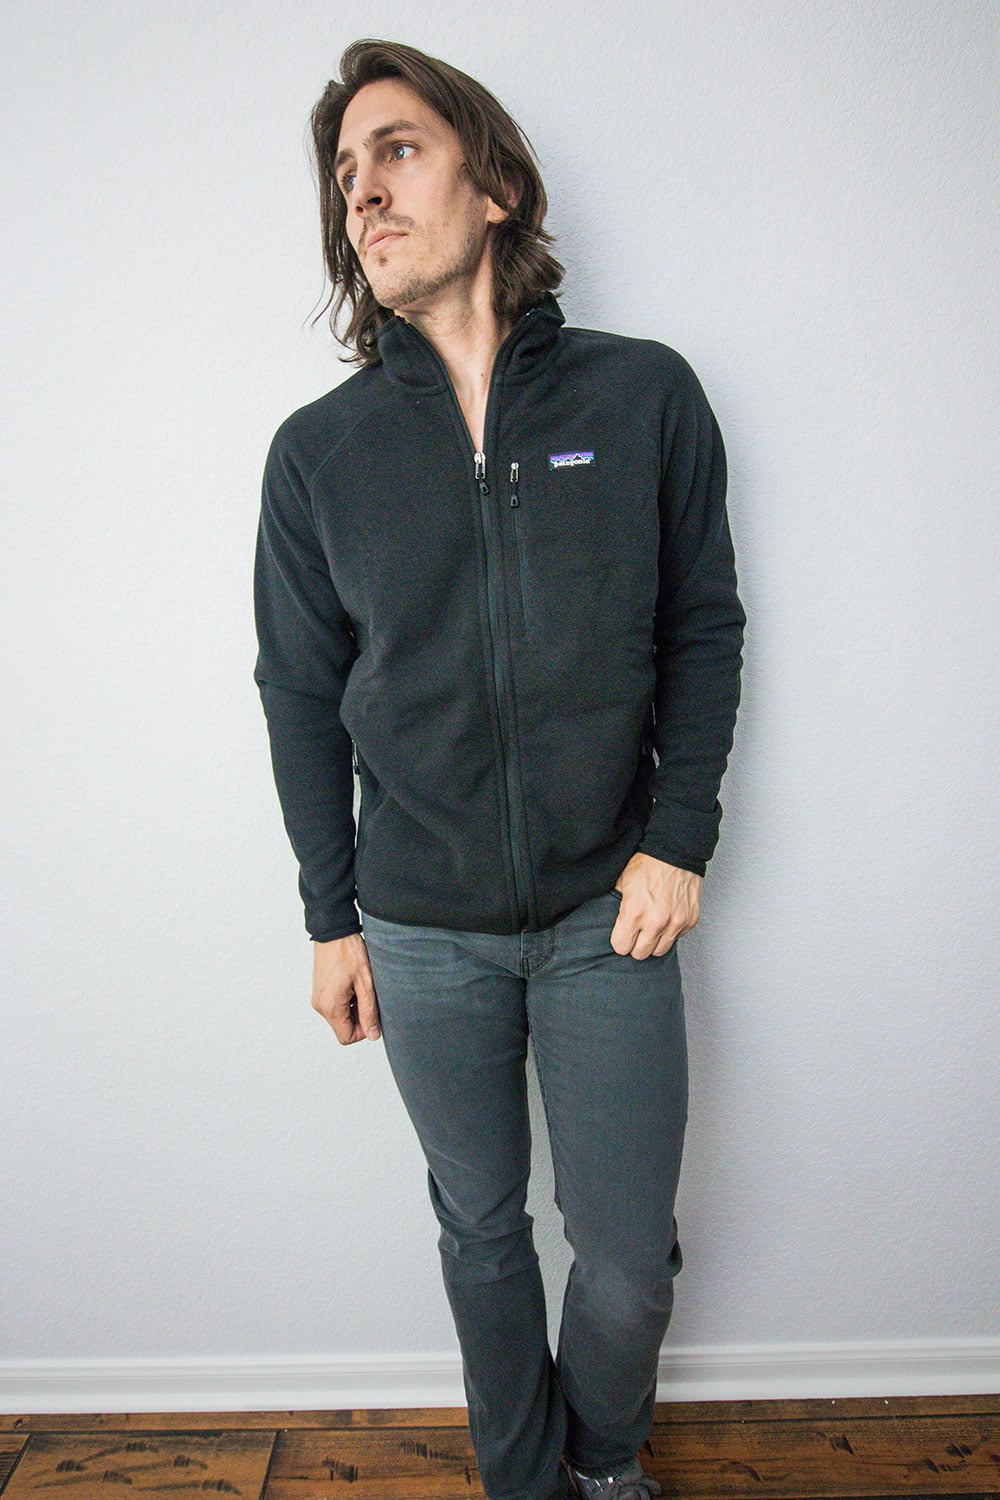 a48f8b5535b Nordstrom Anniversary Sale Mens 1. Patagonia Jacket  109.90     149 After  Sale